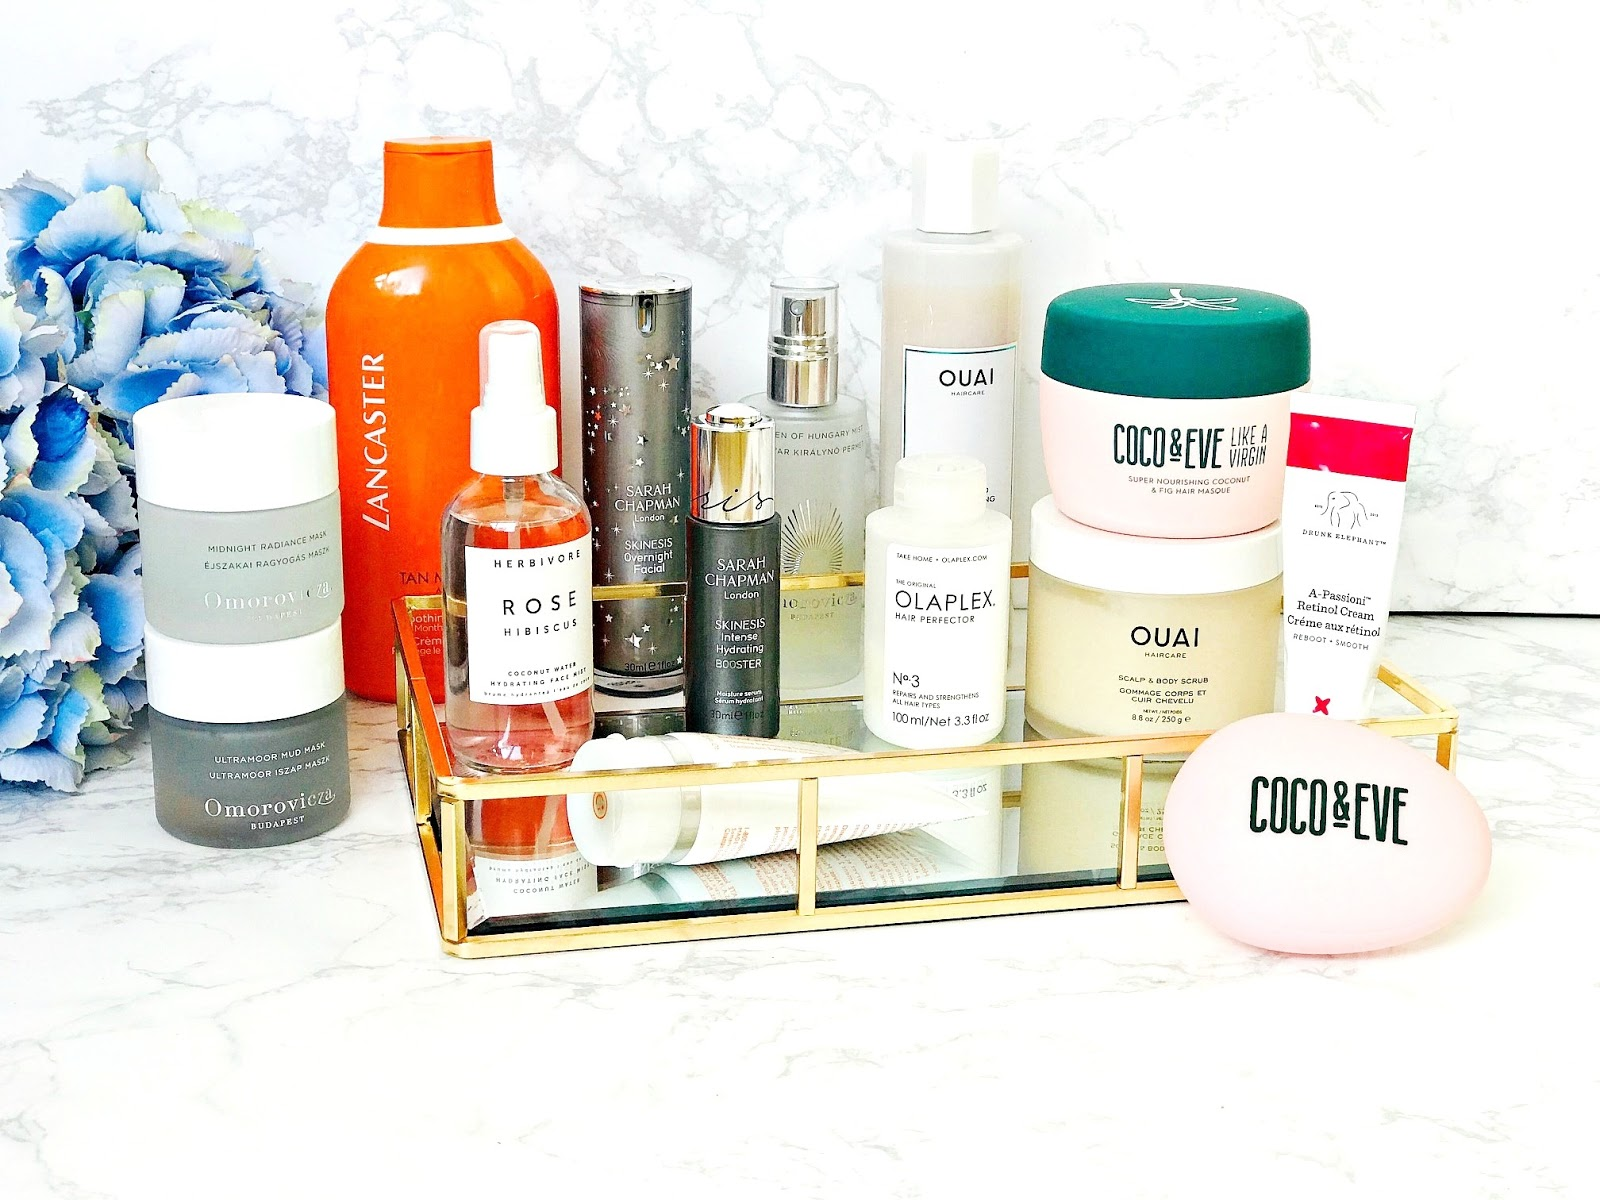 Post holiday pamper products, how to rehydrate post holiday, beat the frizz